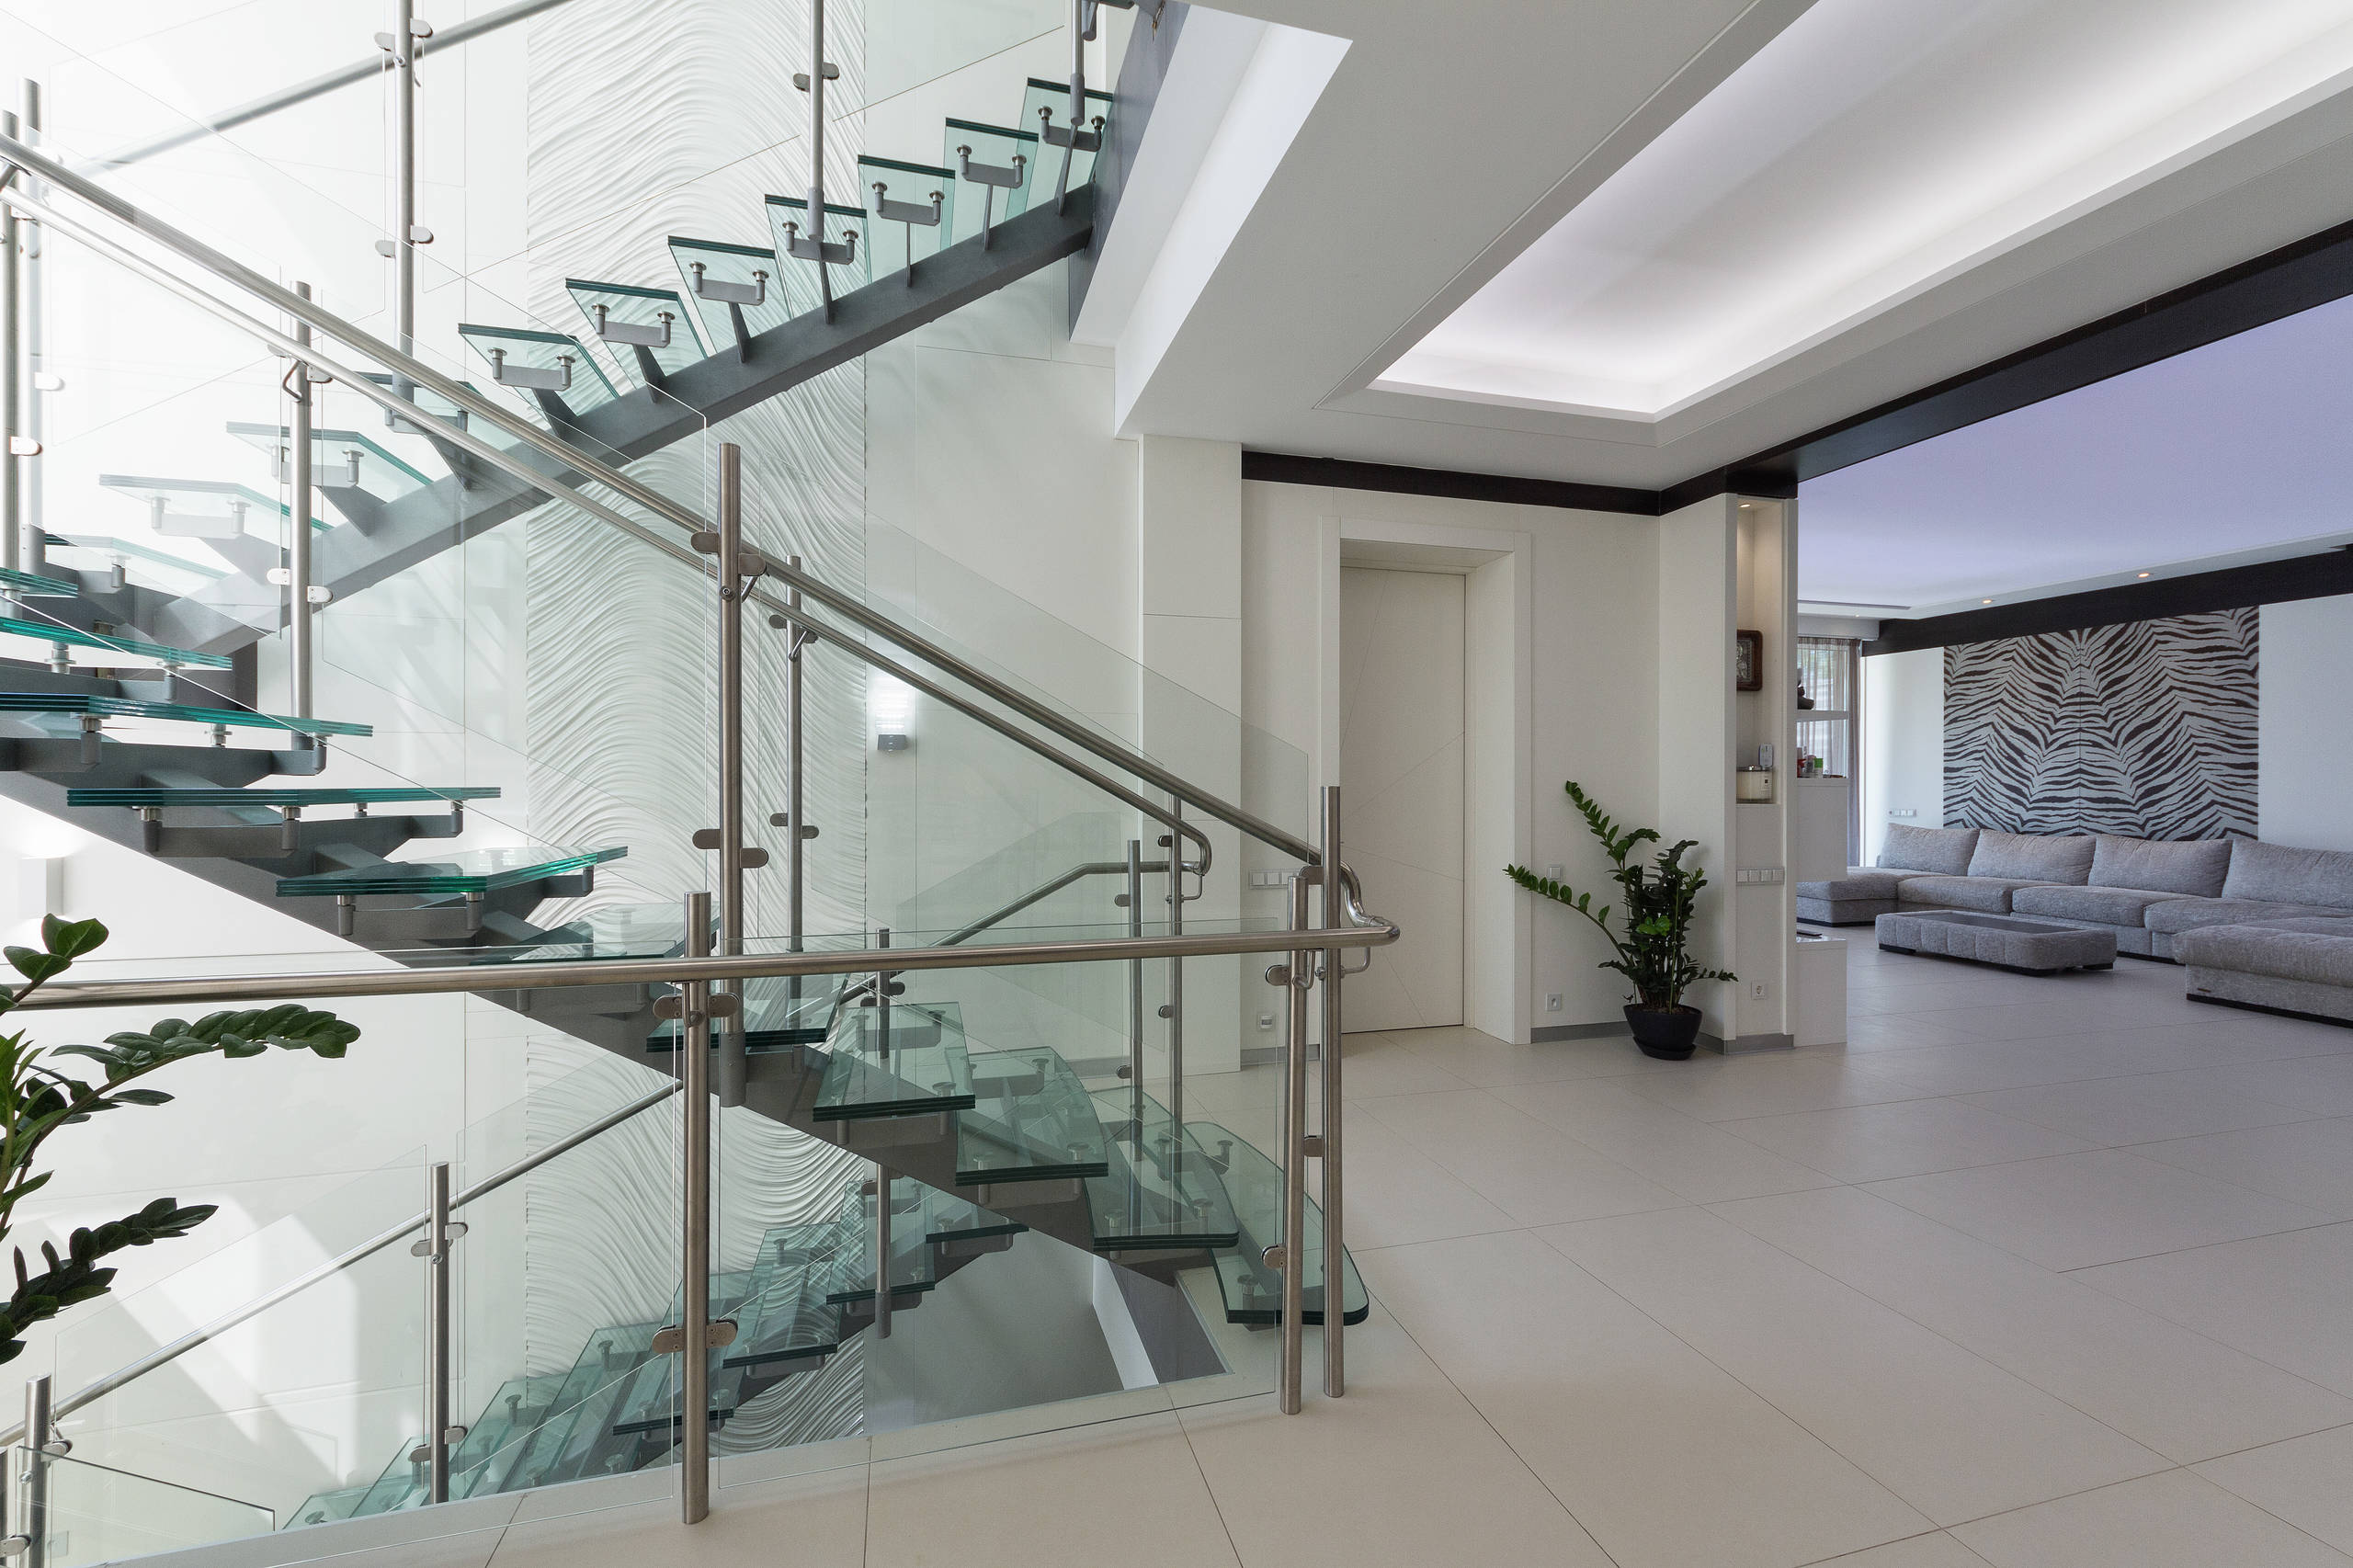 Top Cucina In Vetro Temperato 75 beautiful industrial glass staircase pictures & ideas | houzz